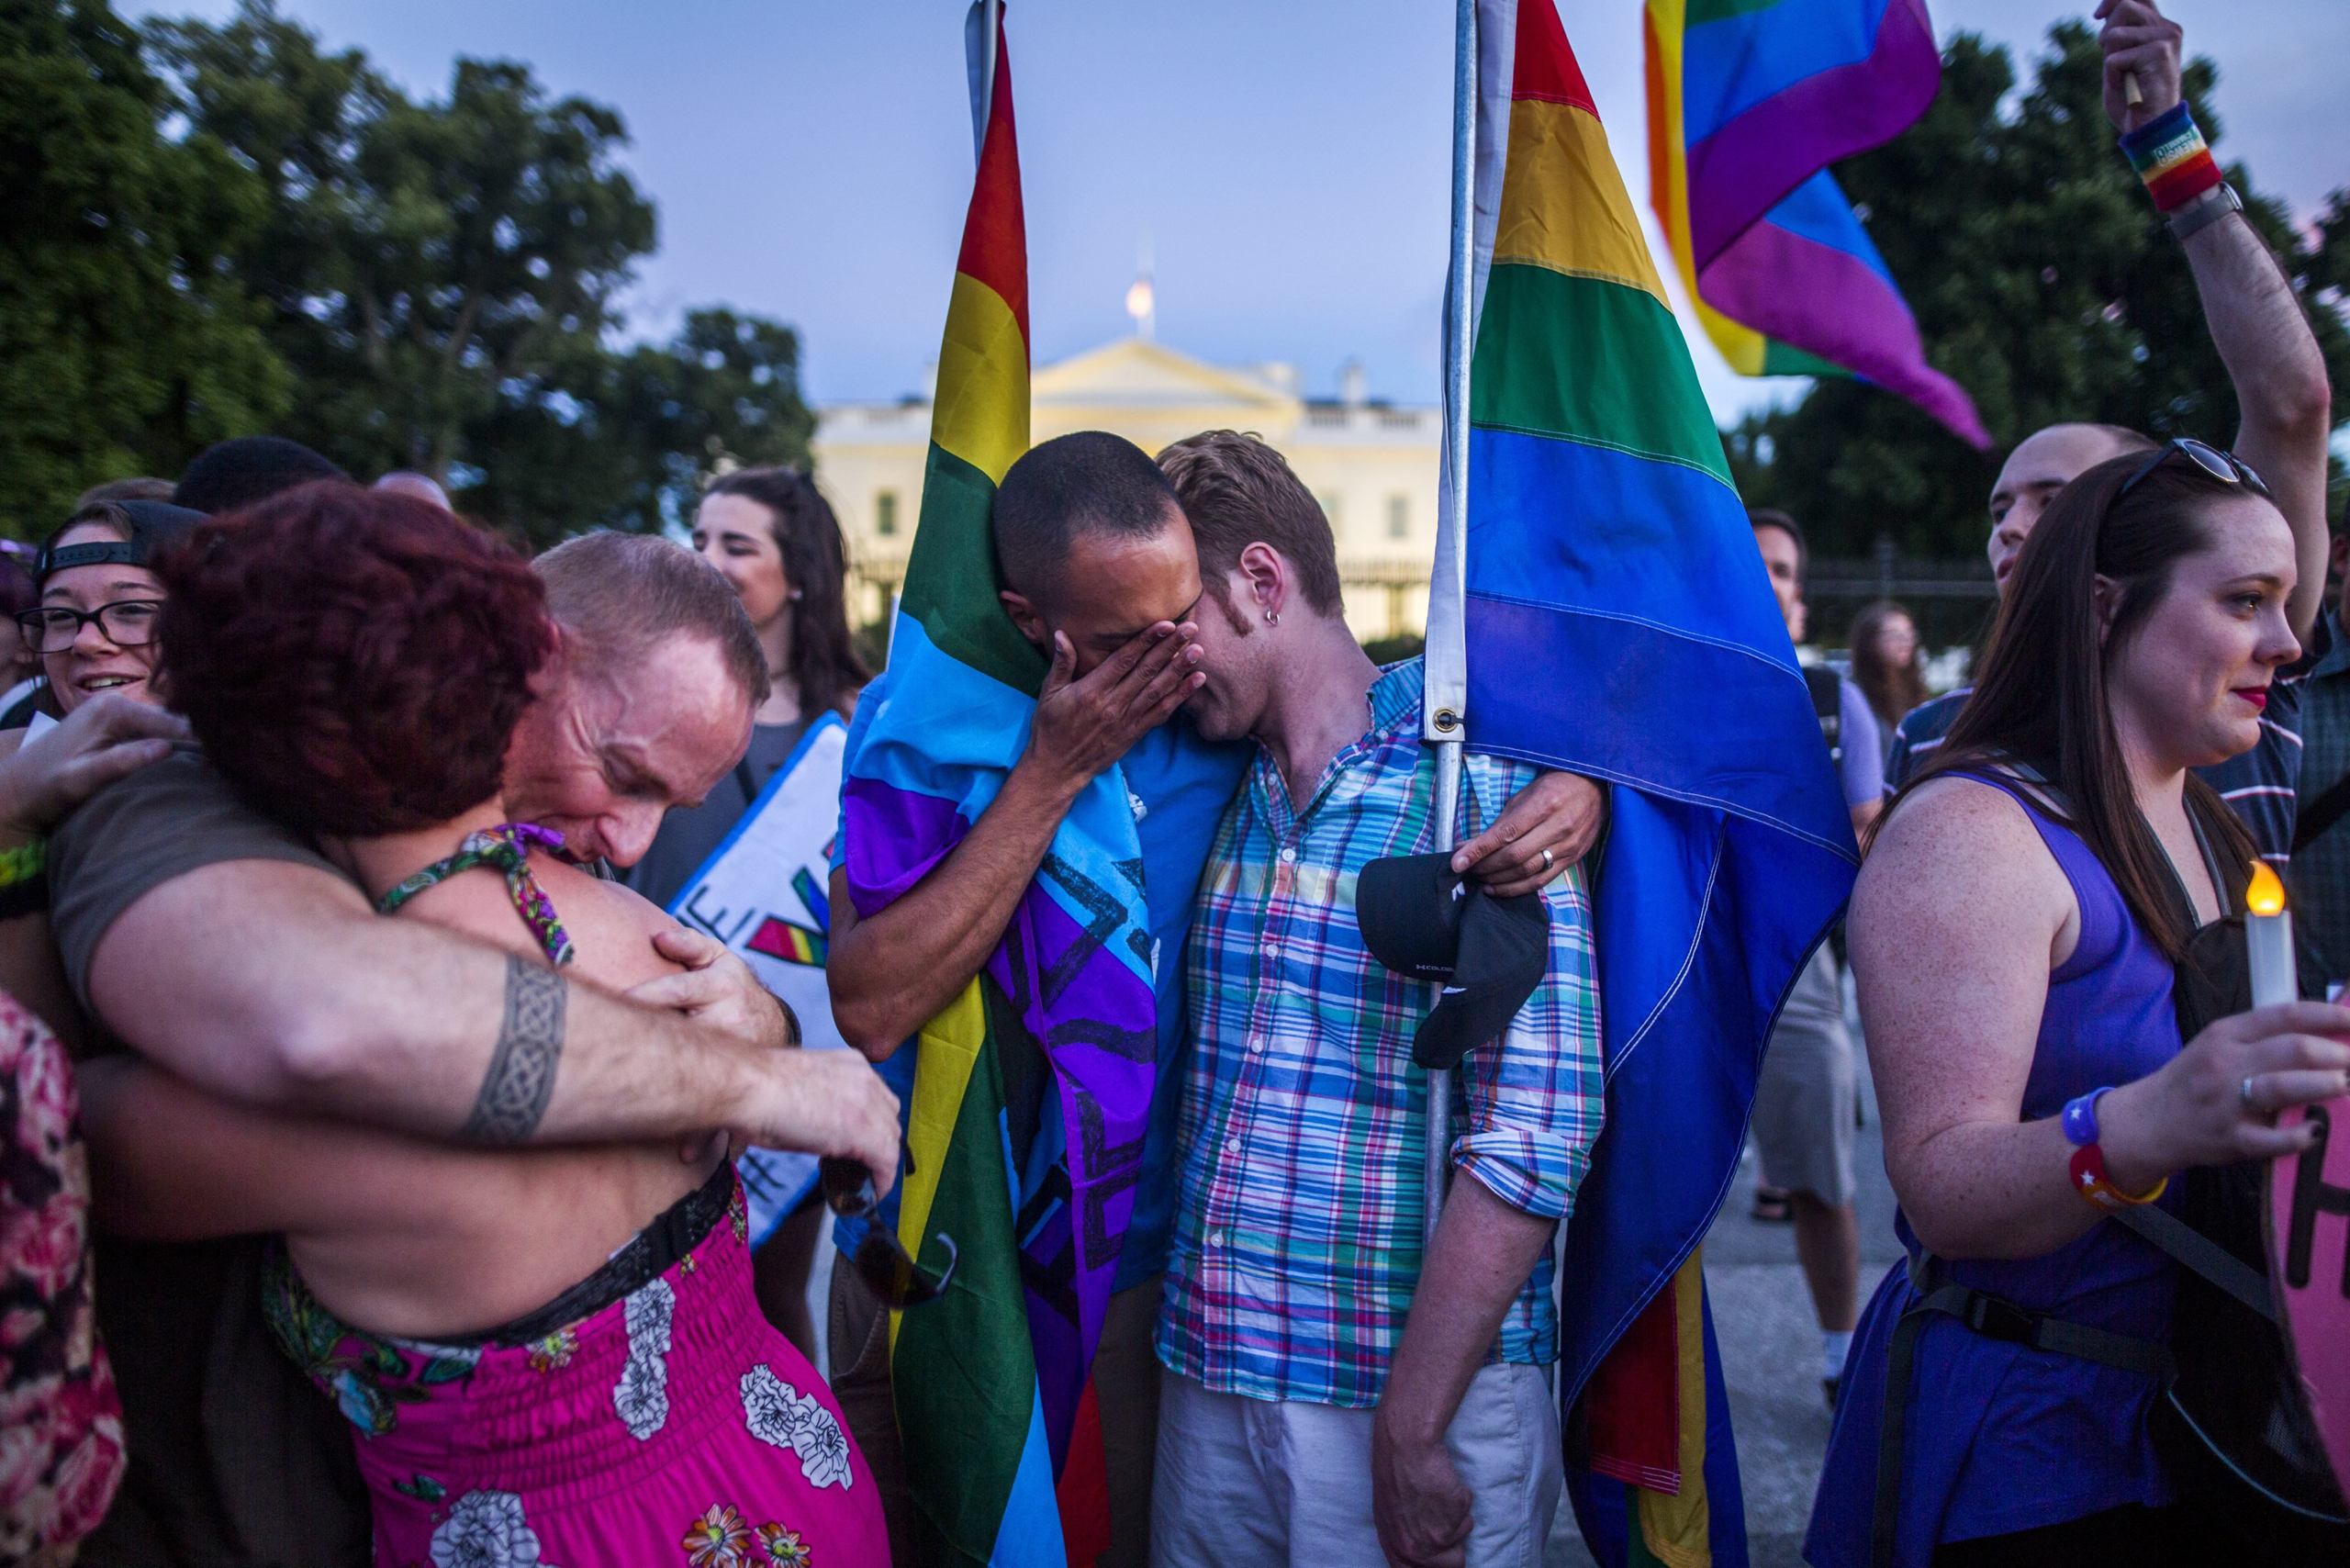 Members and supporters of the LGBT community attend a candlelight vigil outside the White House in Washington, D.C. on June 12, 2016.